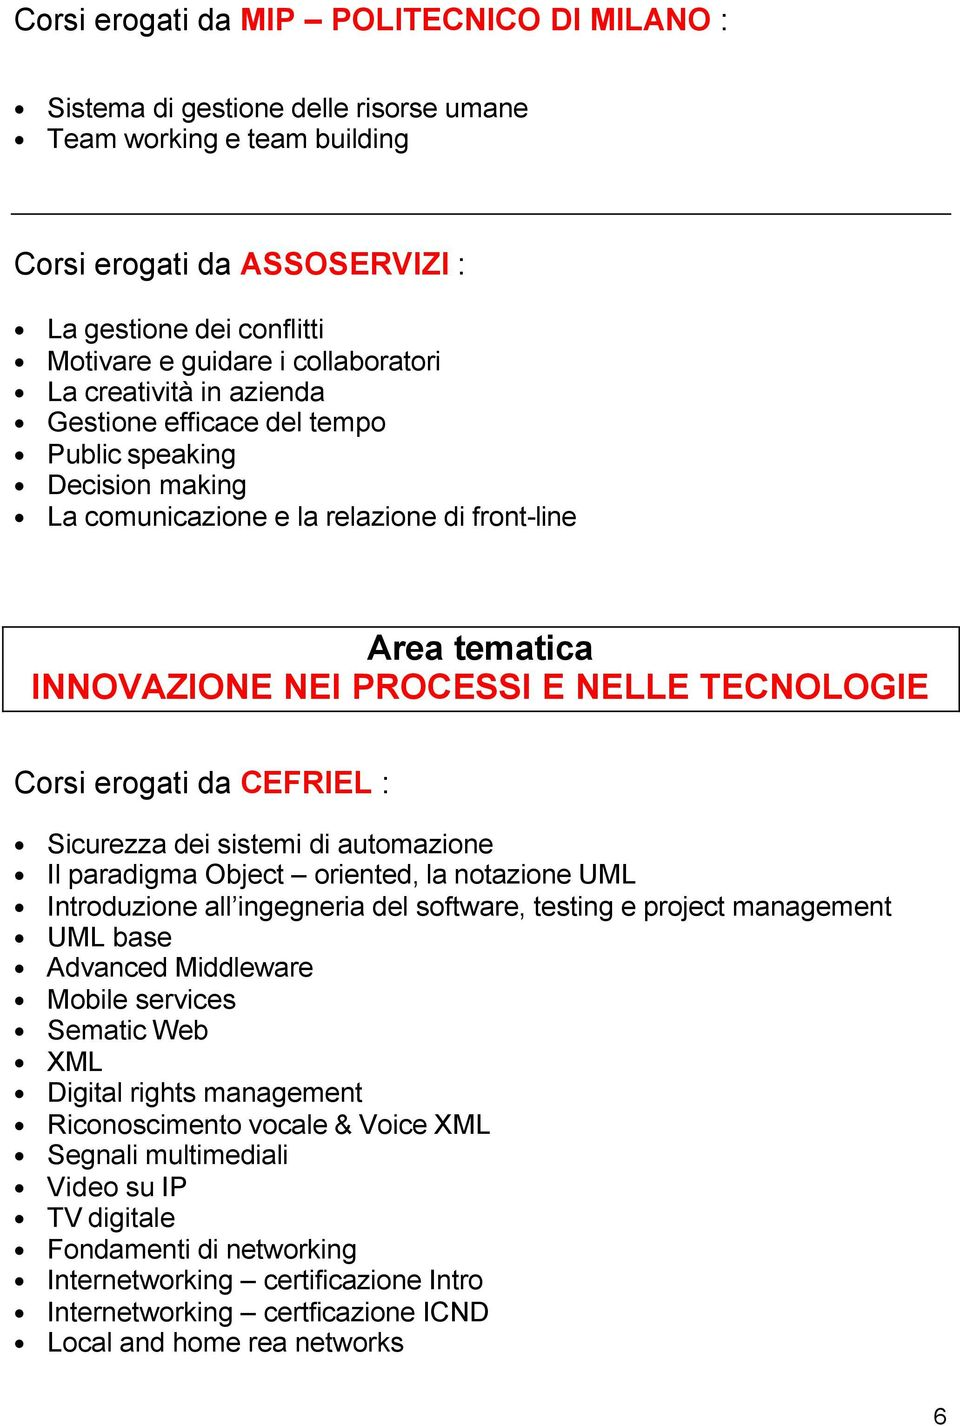 TECNOLOGIE Corsi erogati da CEFRIEL : Sicurezza dei sistemi di automazione Il paradigma Object oriented, la notazione UML Introduzione all ingegneria del software, testing e project management UML